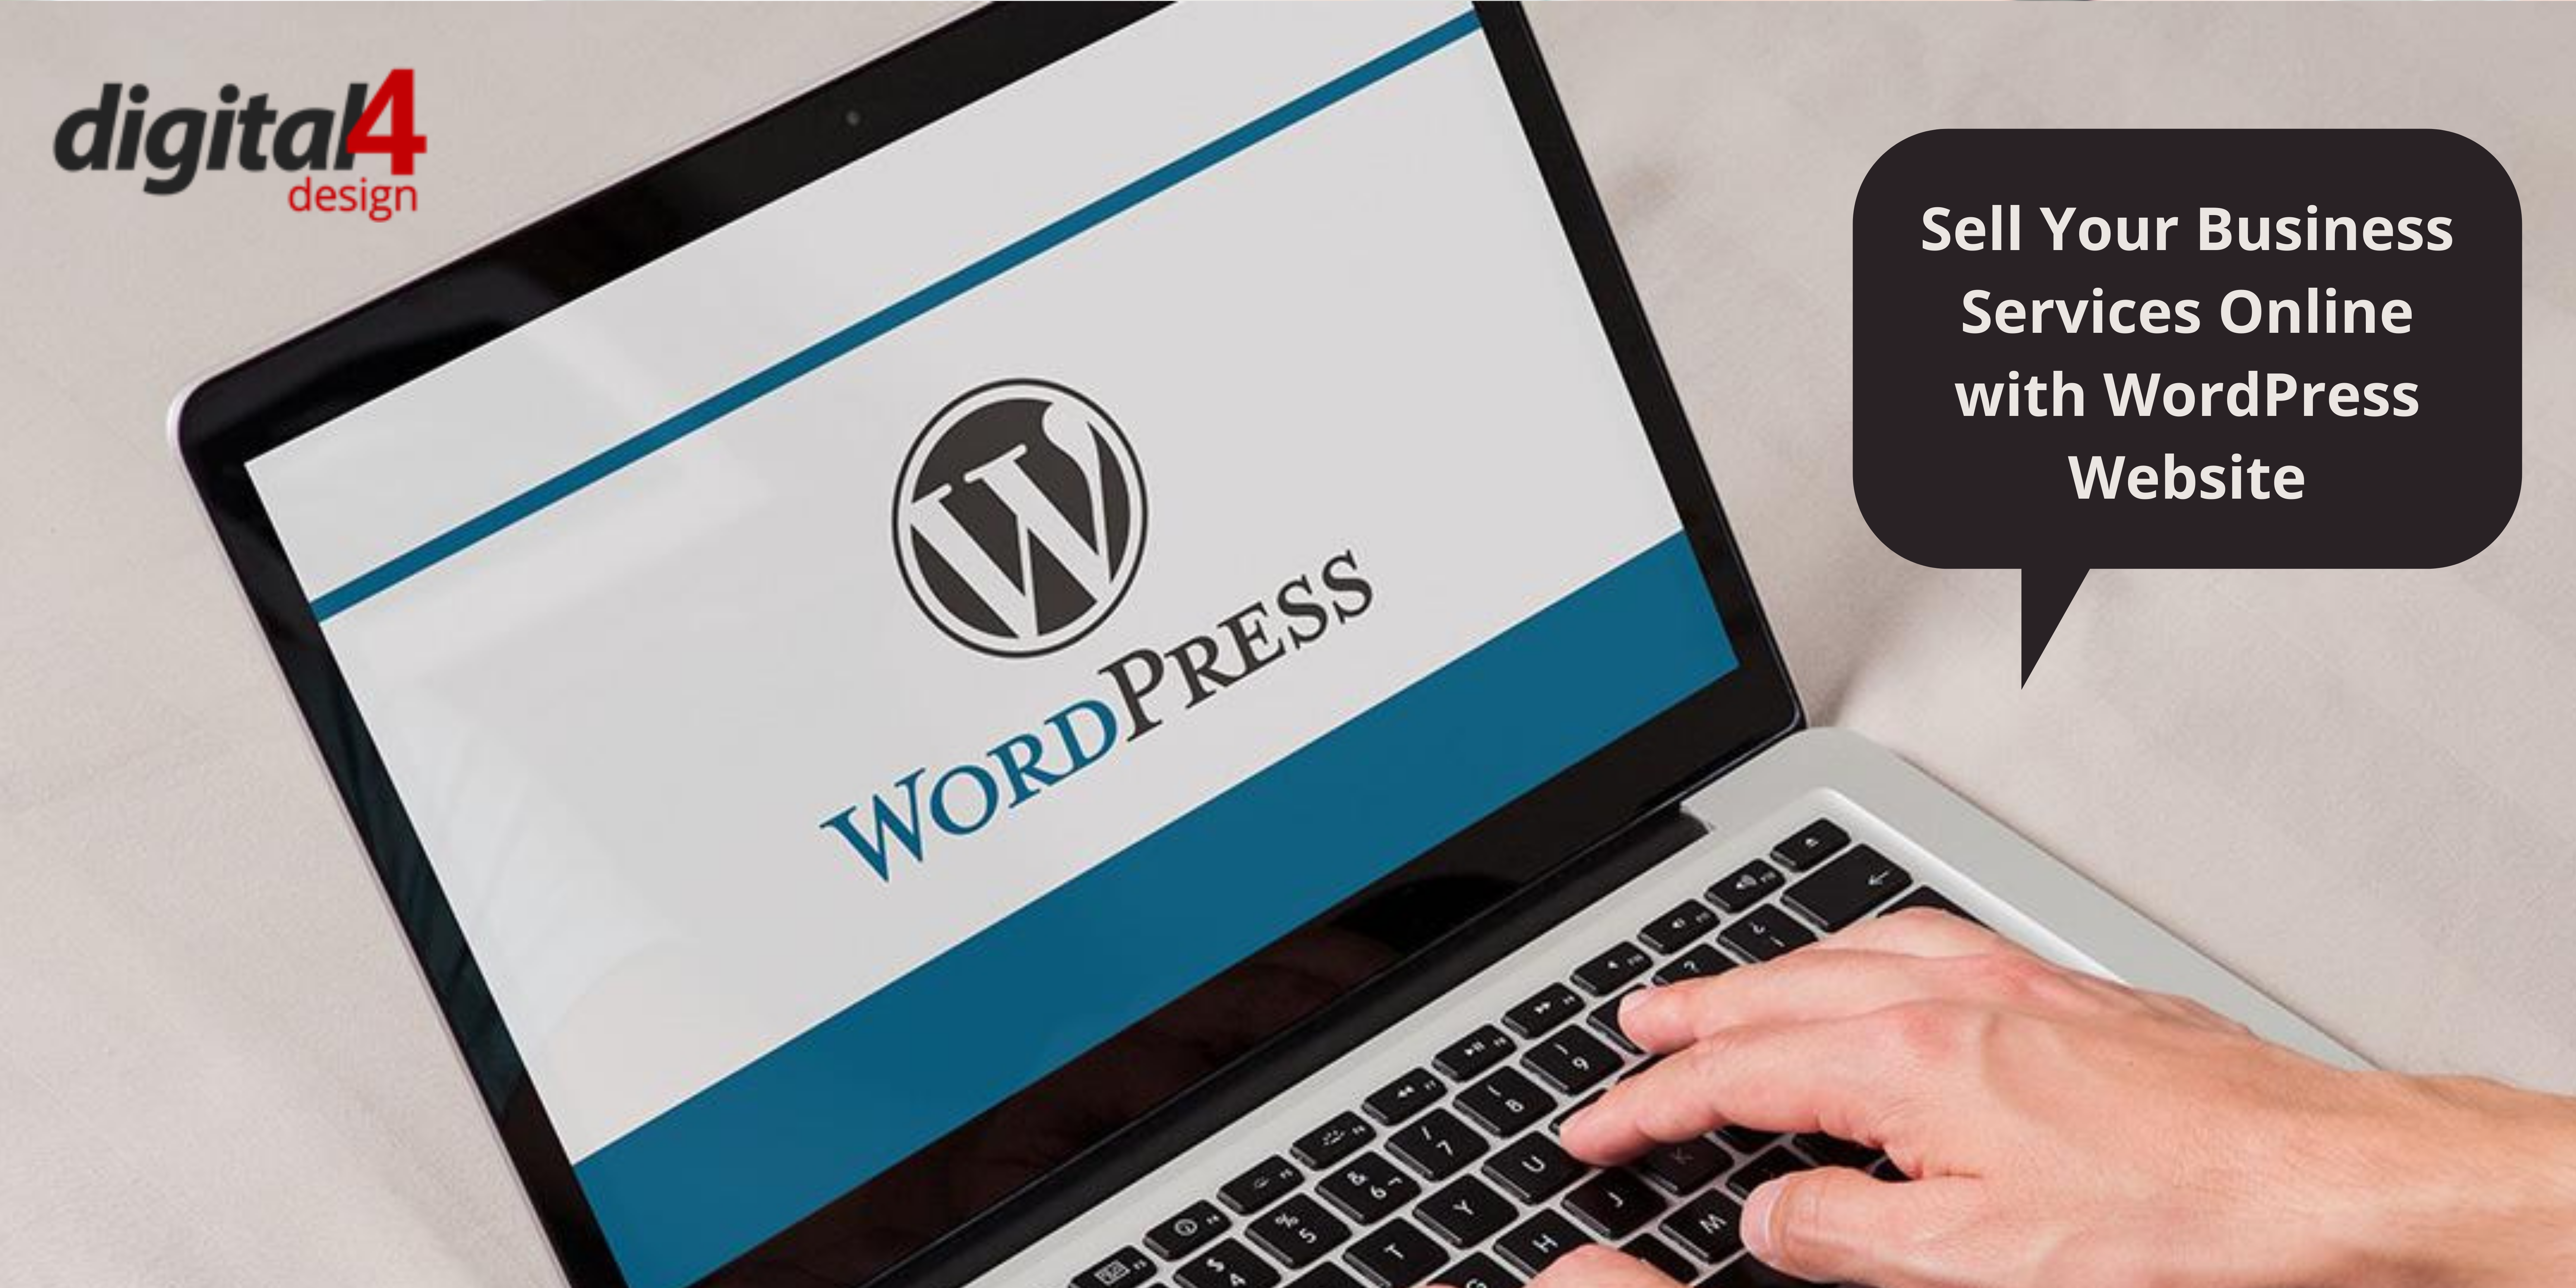 Sell Your Business Services Online with WordPress Website - Digital4design